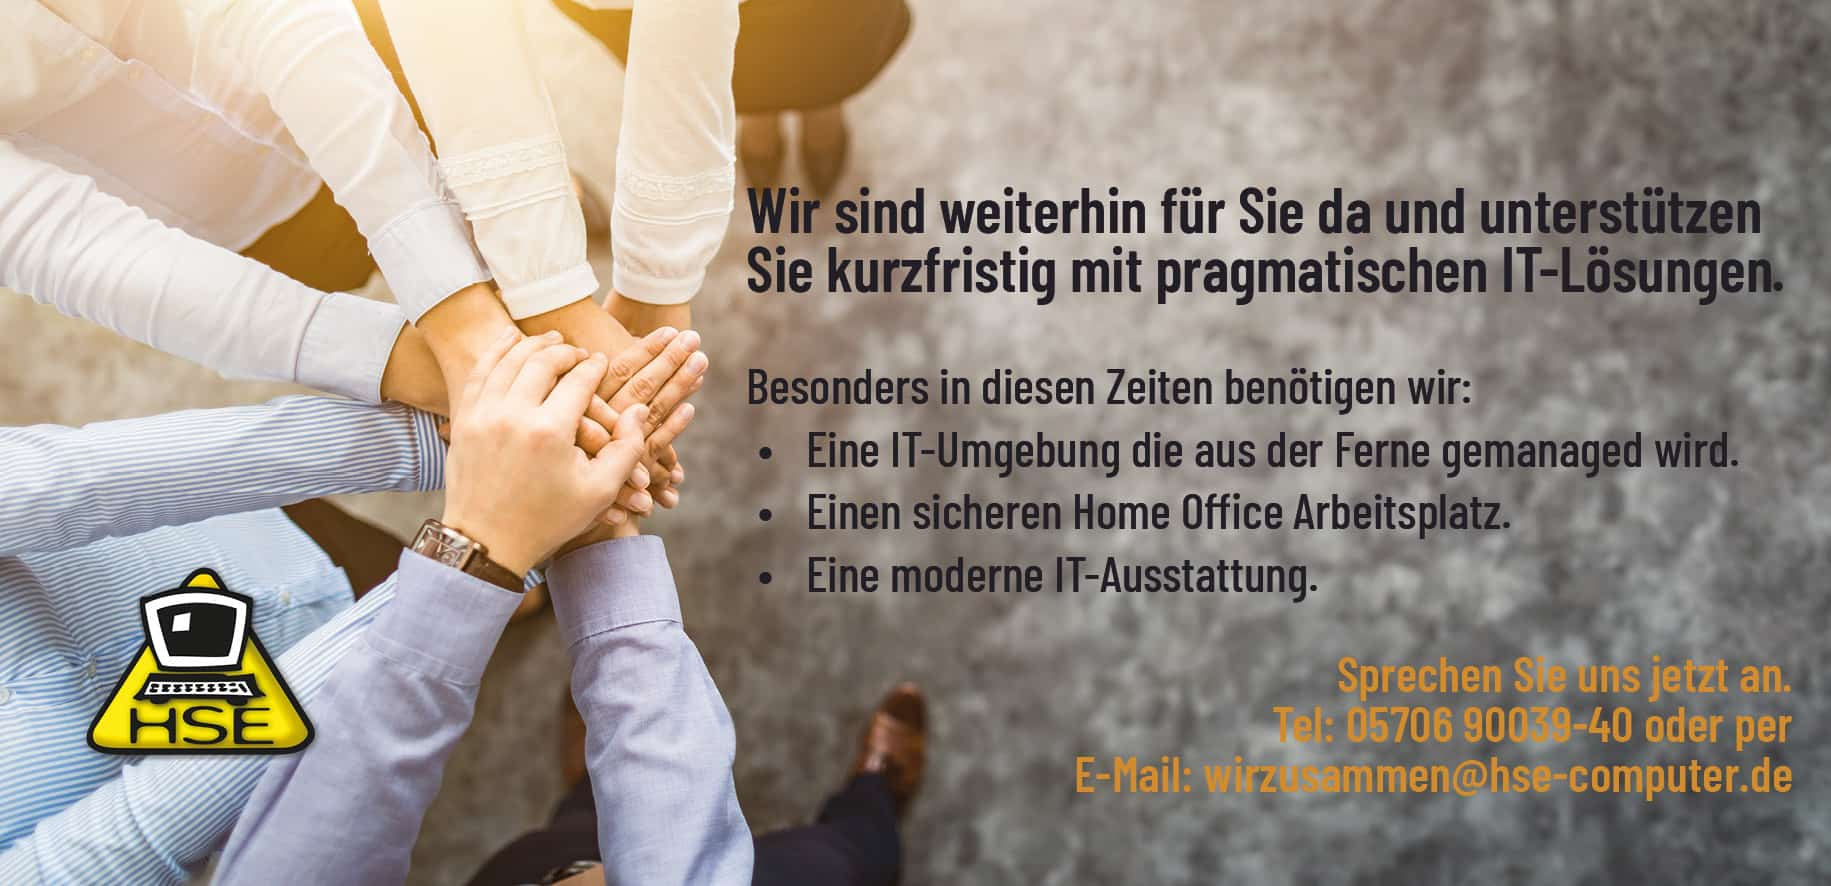 20.04.03 facebook Titel Wir sind da - HSE Computersysteme - IT aus Ostwestfalen